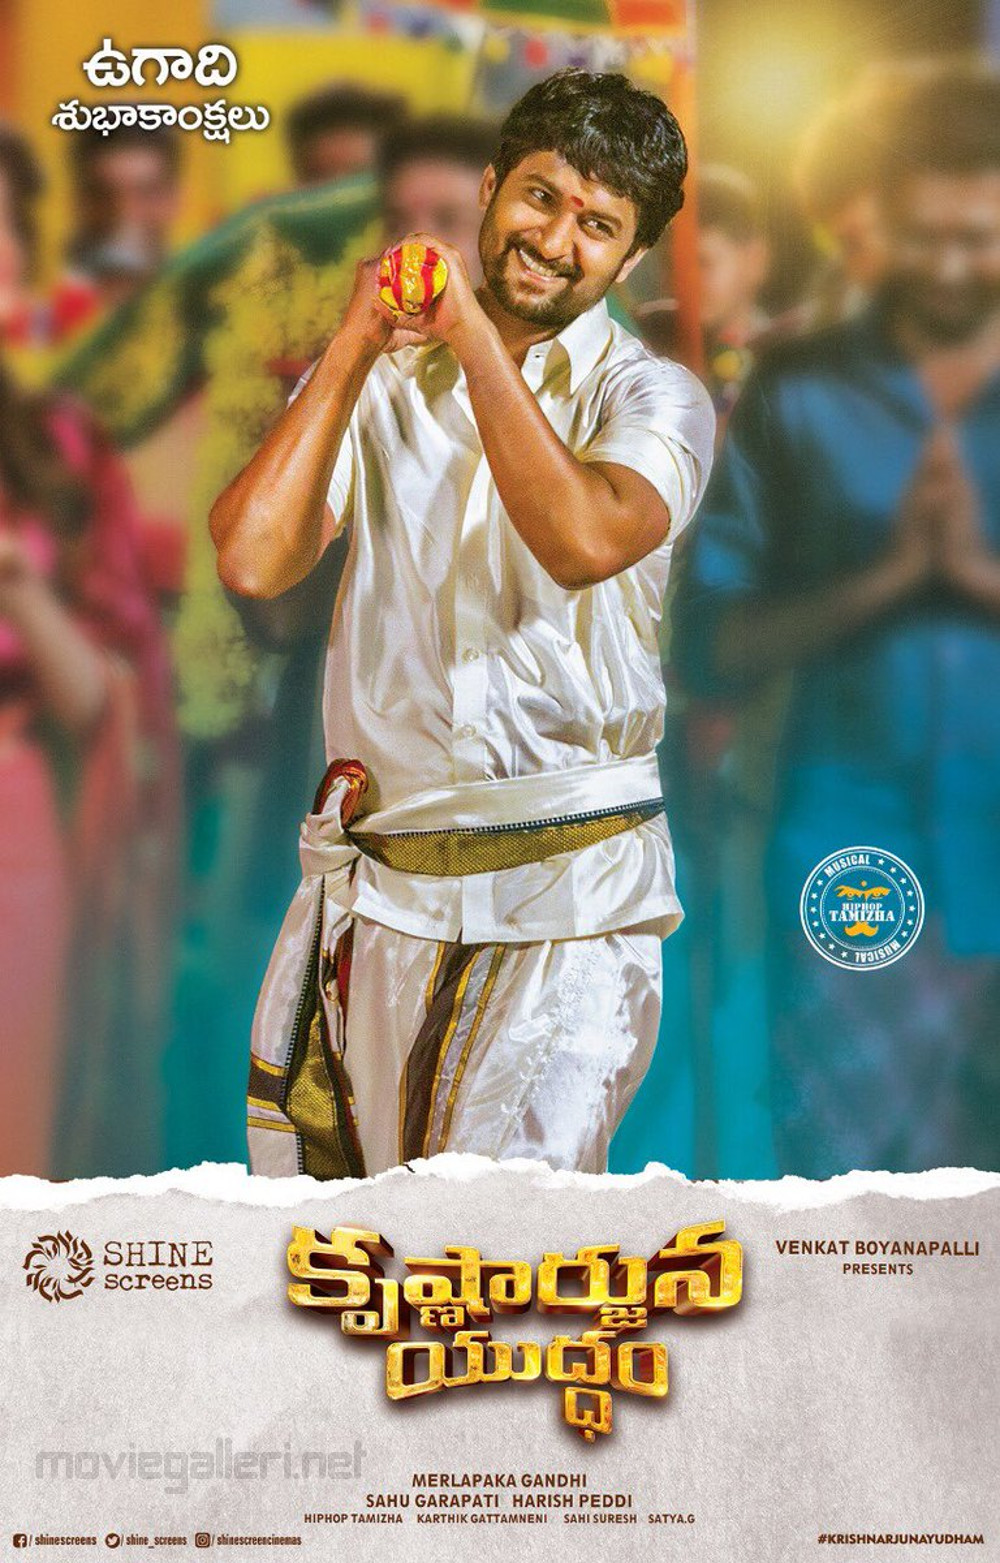 Nani Krishnarjuna Yuddham Movie Ugadi Wishes Poster